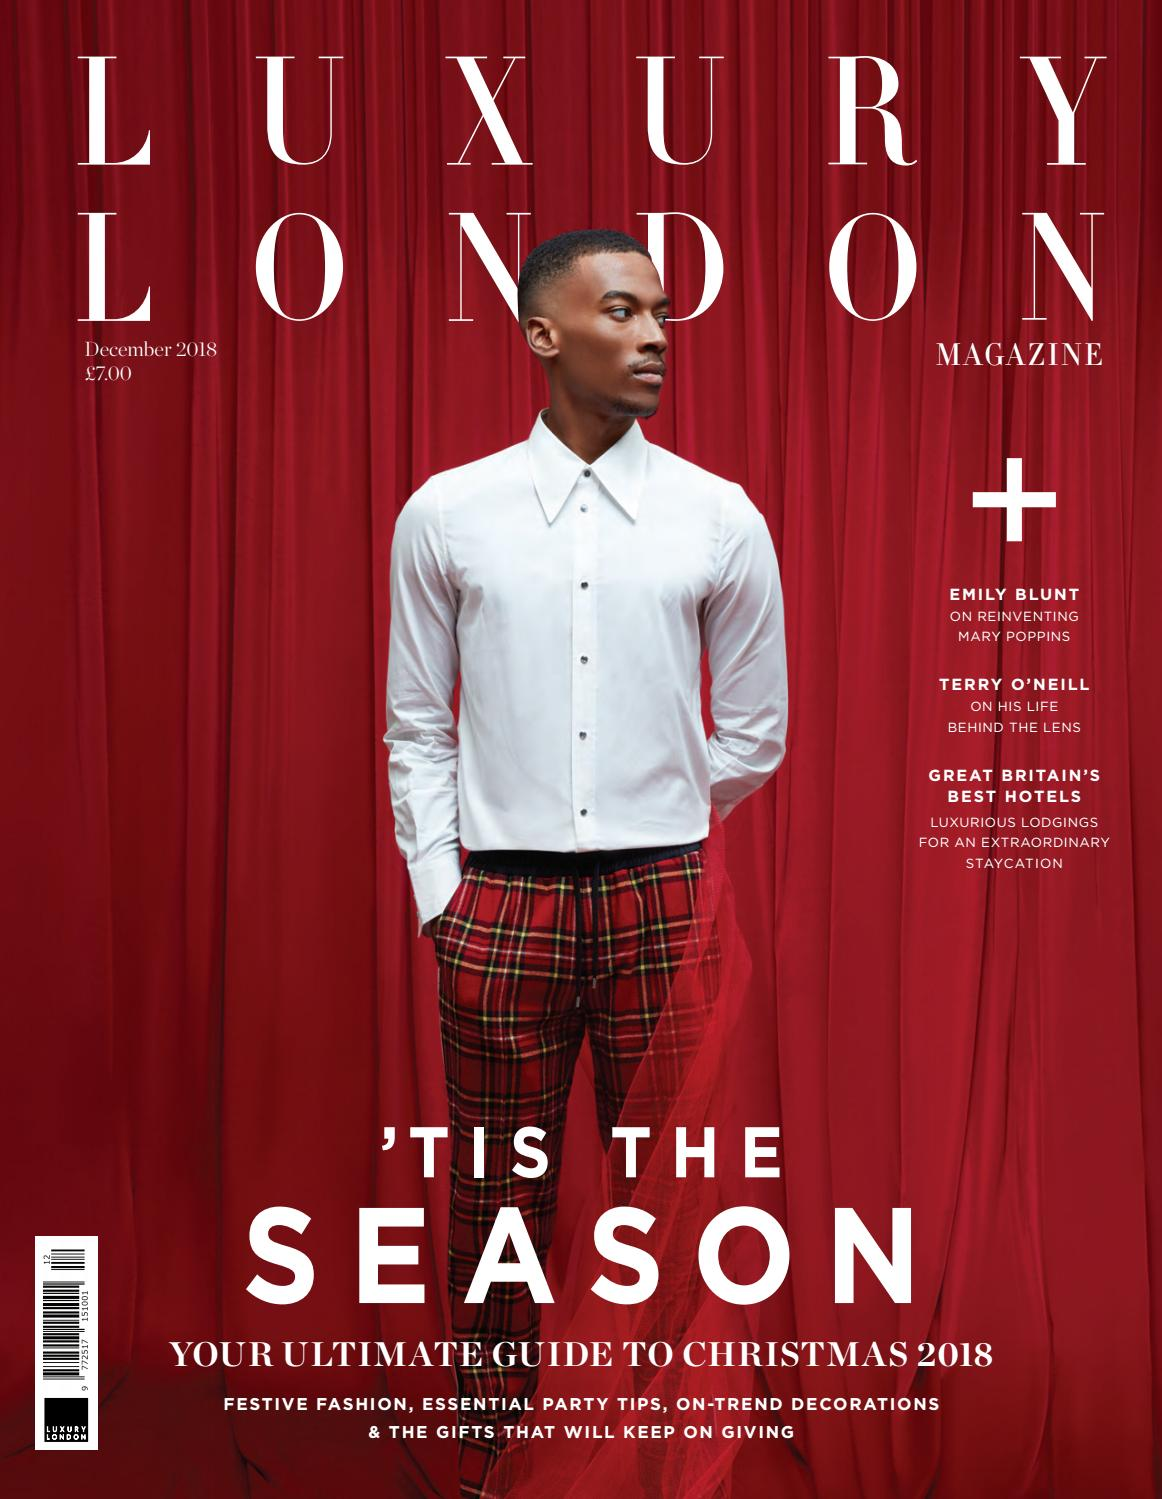 95ec146bc Luxury London Magazine December 2018 by Luxury London Media - issuu